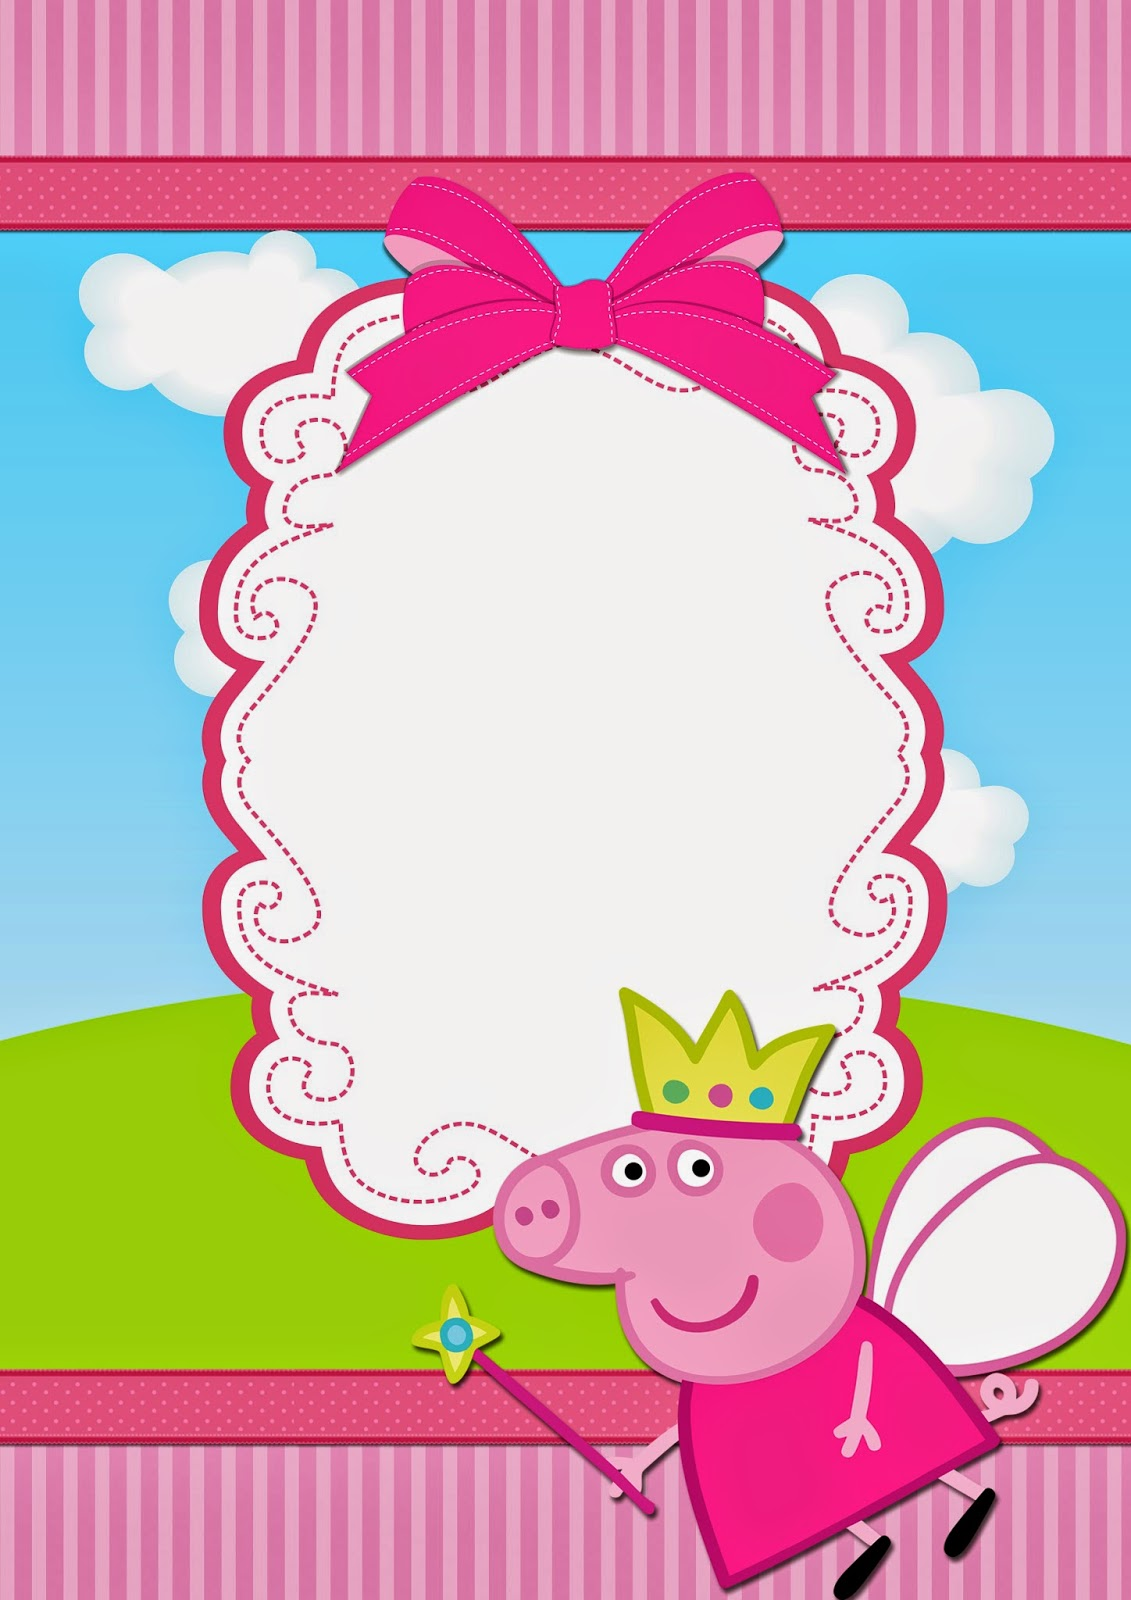 """Search Results for """"Pepperpig Images"""" – Calendar 2015"""